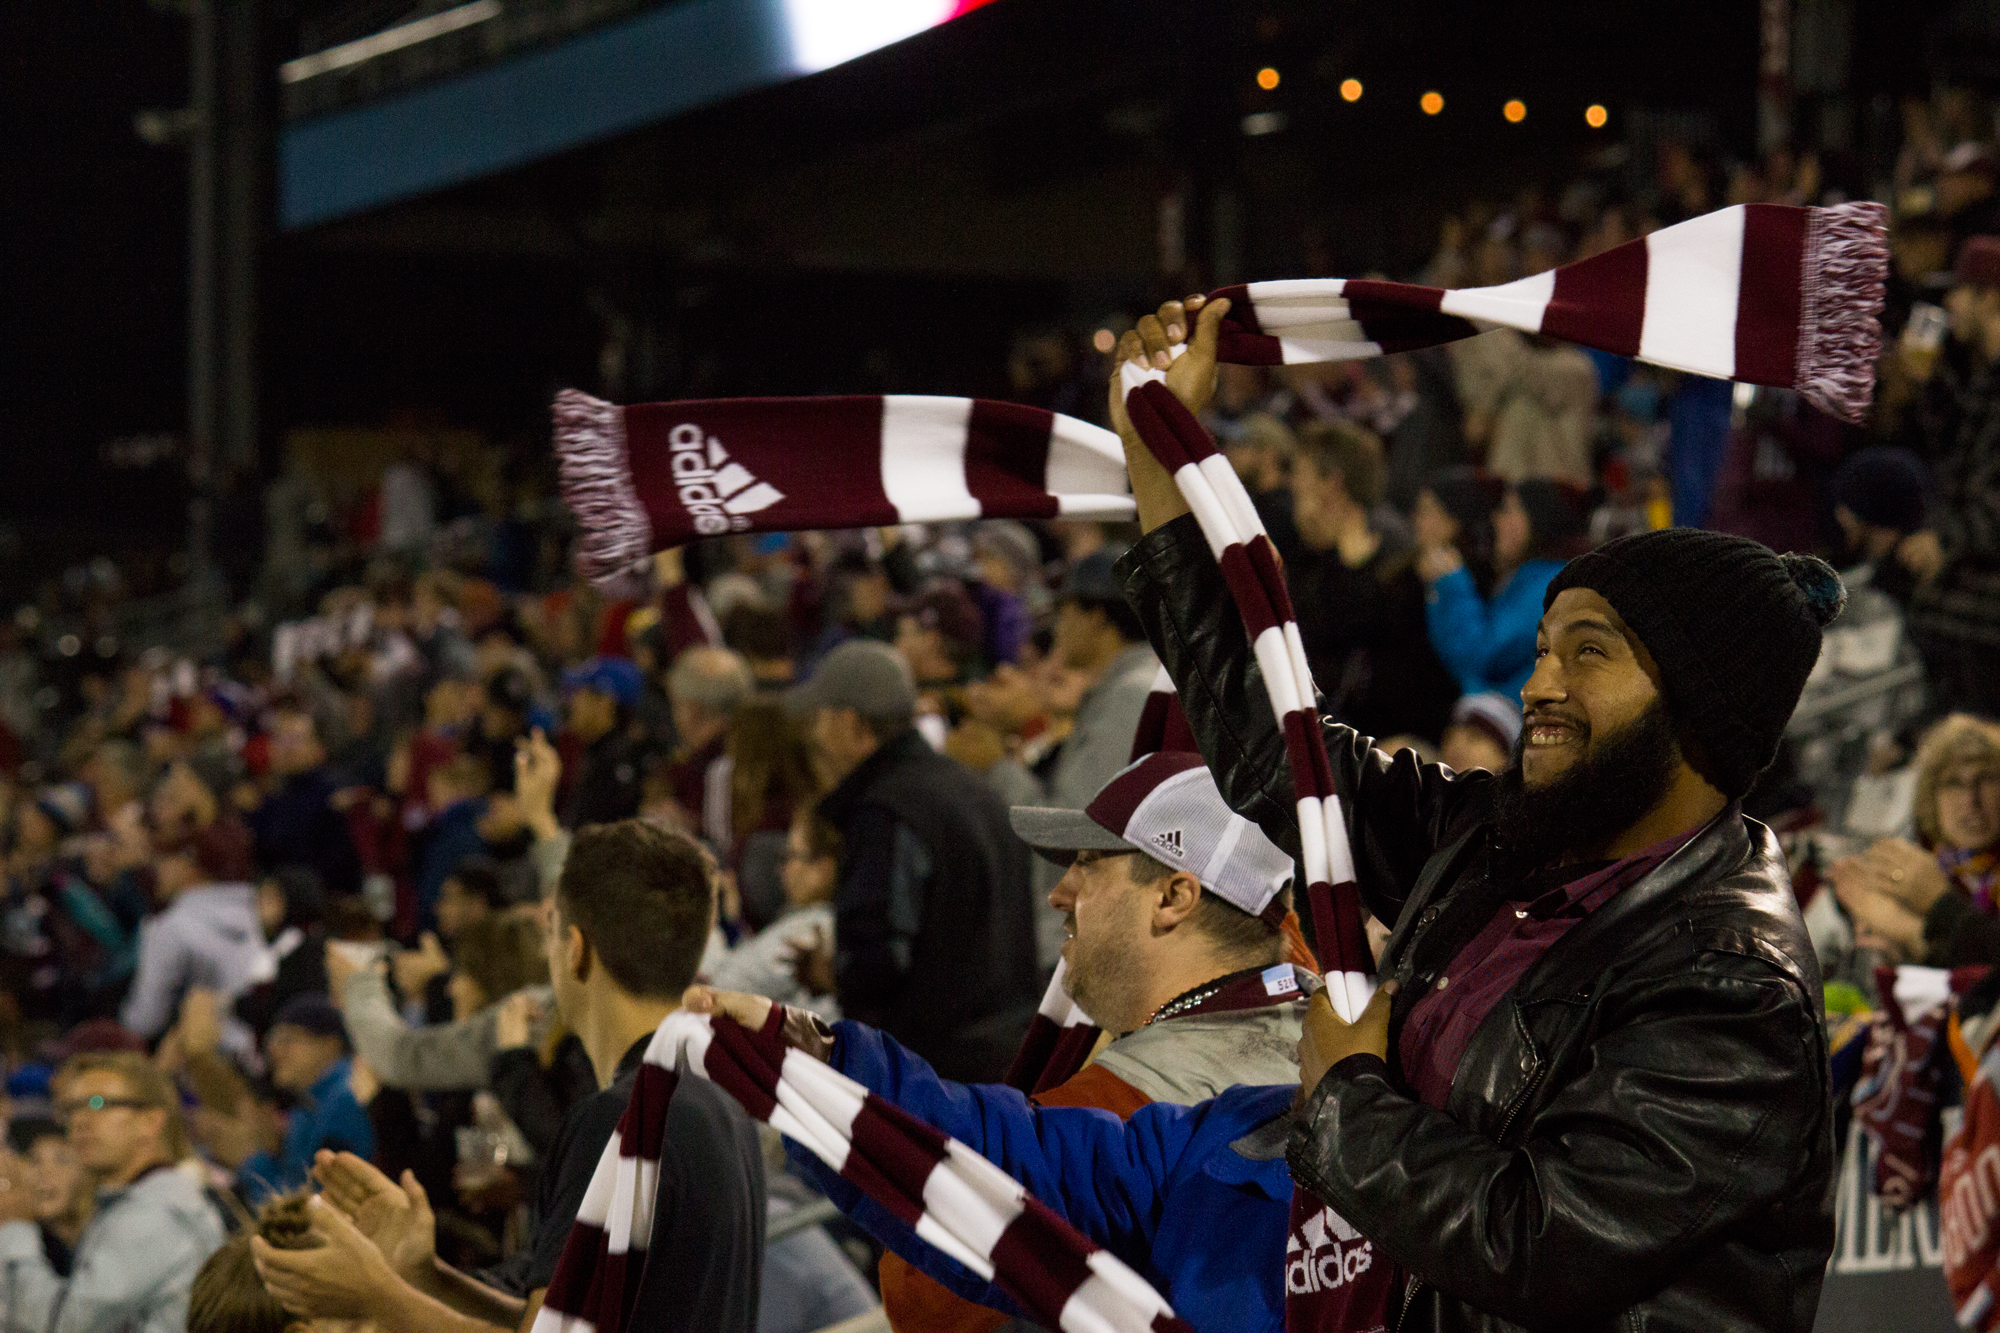 Attendees celebrate a goal in the second half at Dick's Sporting Goods Park. Photo by: Matthew McGuire